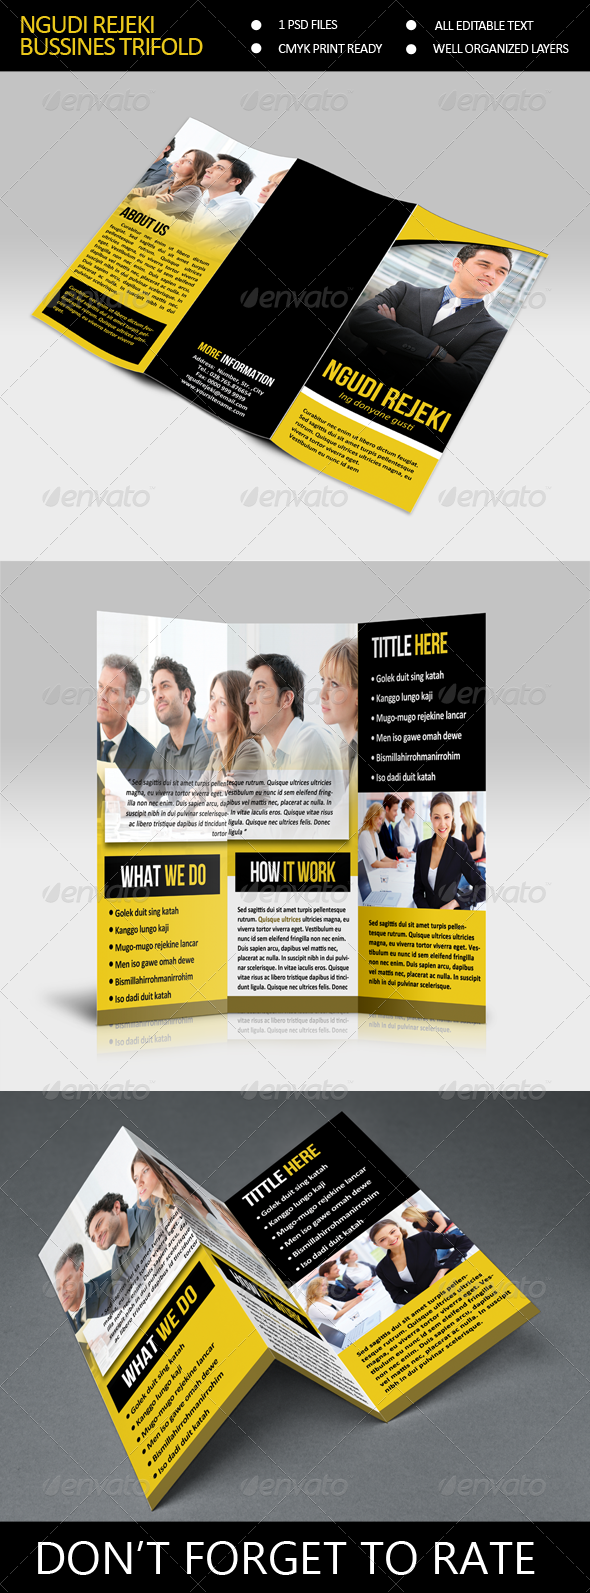 NR Bussines Trifold Brocure Template